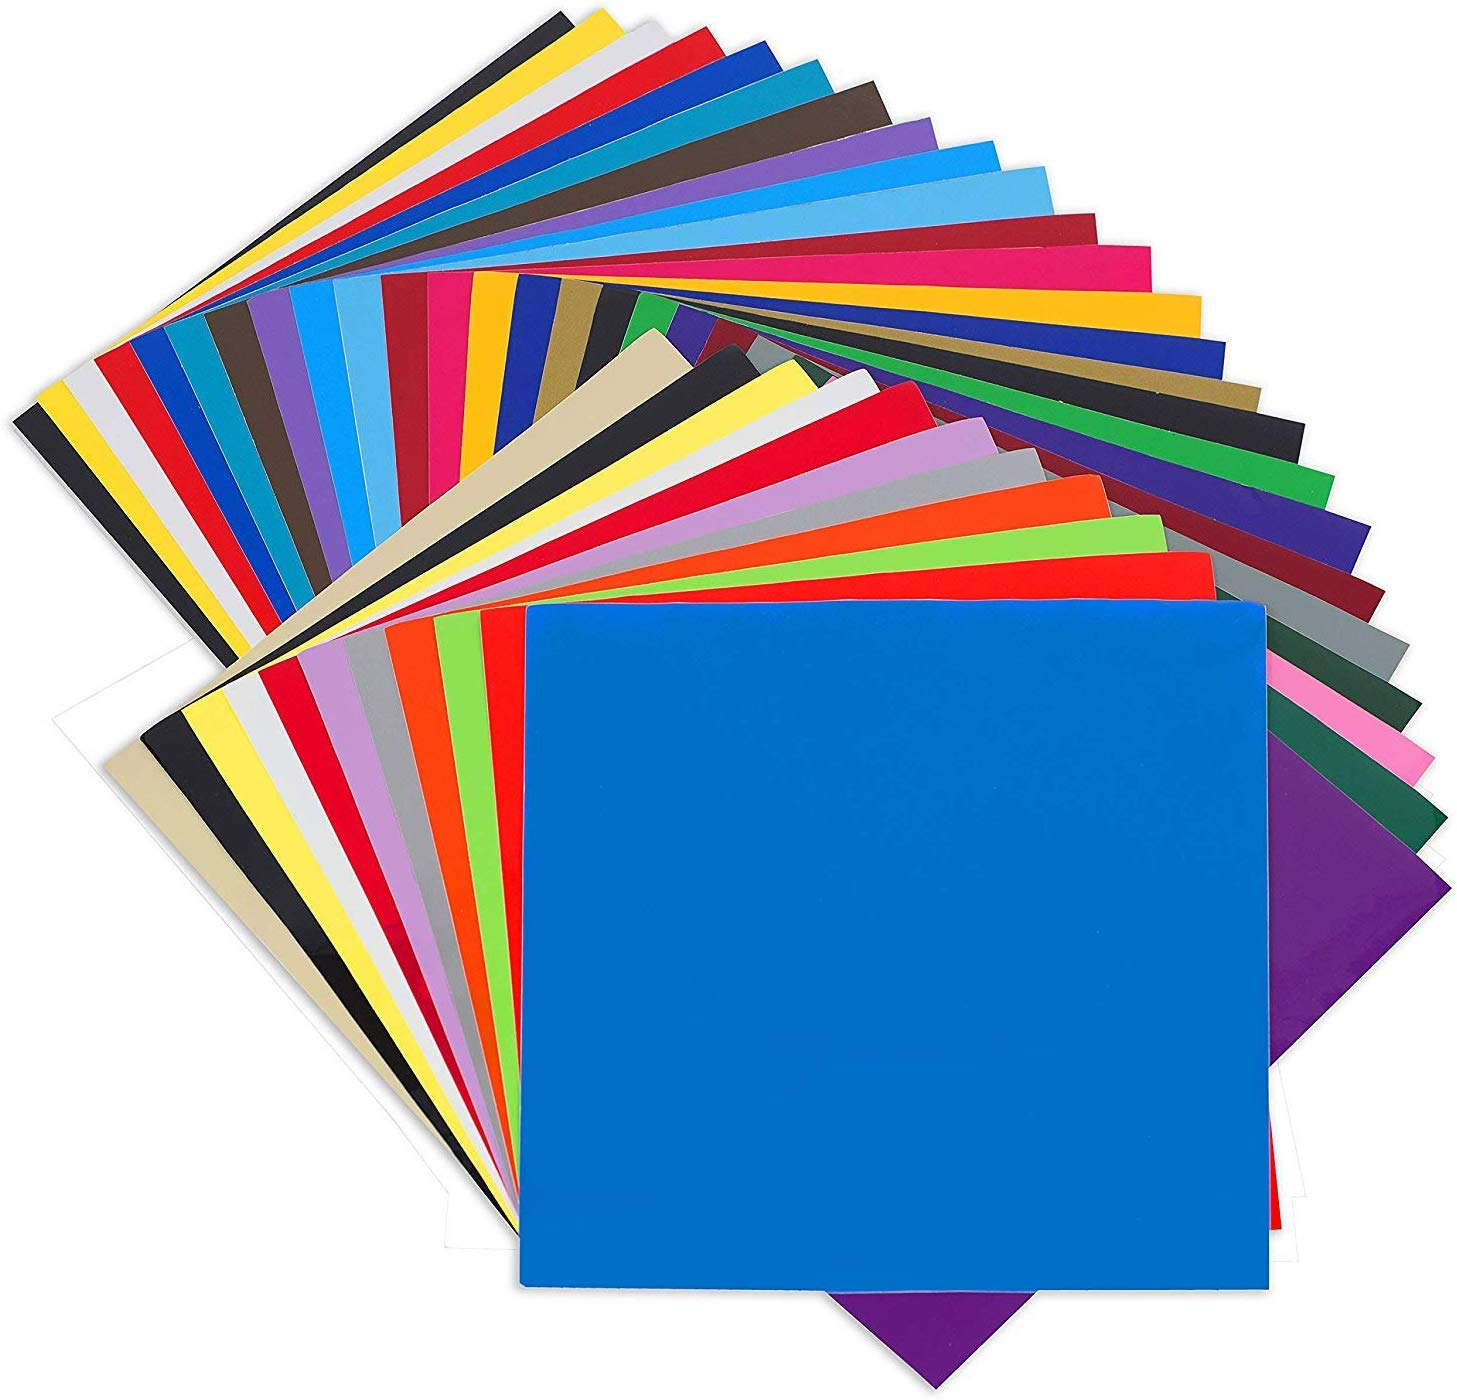 Angel Crafts Adhesive Vinyl Sheets: Permanent Vinyl for Cricut, Silhouette  Cameo, Oracal Cutters.